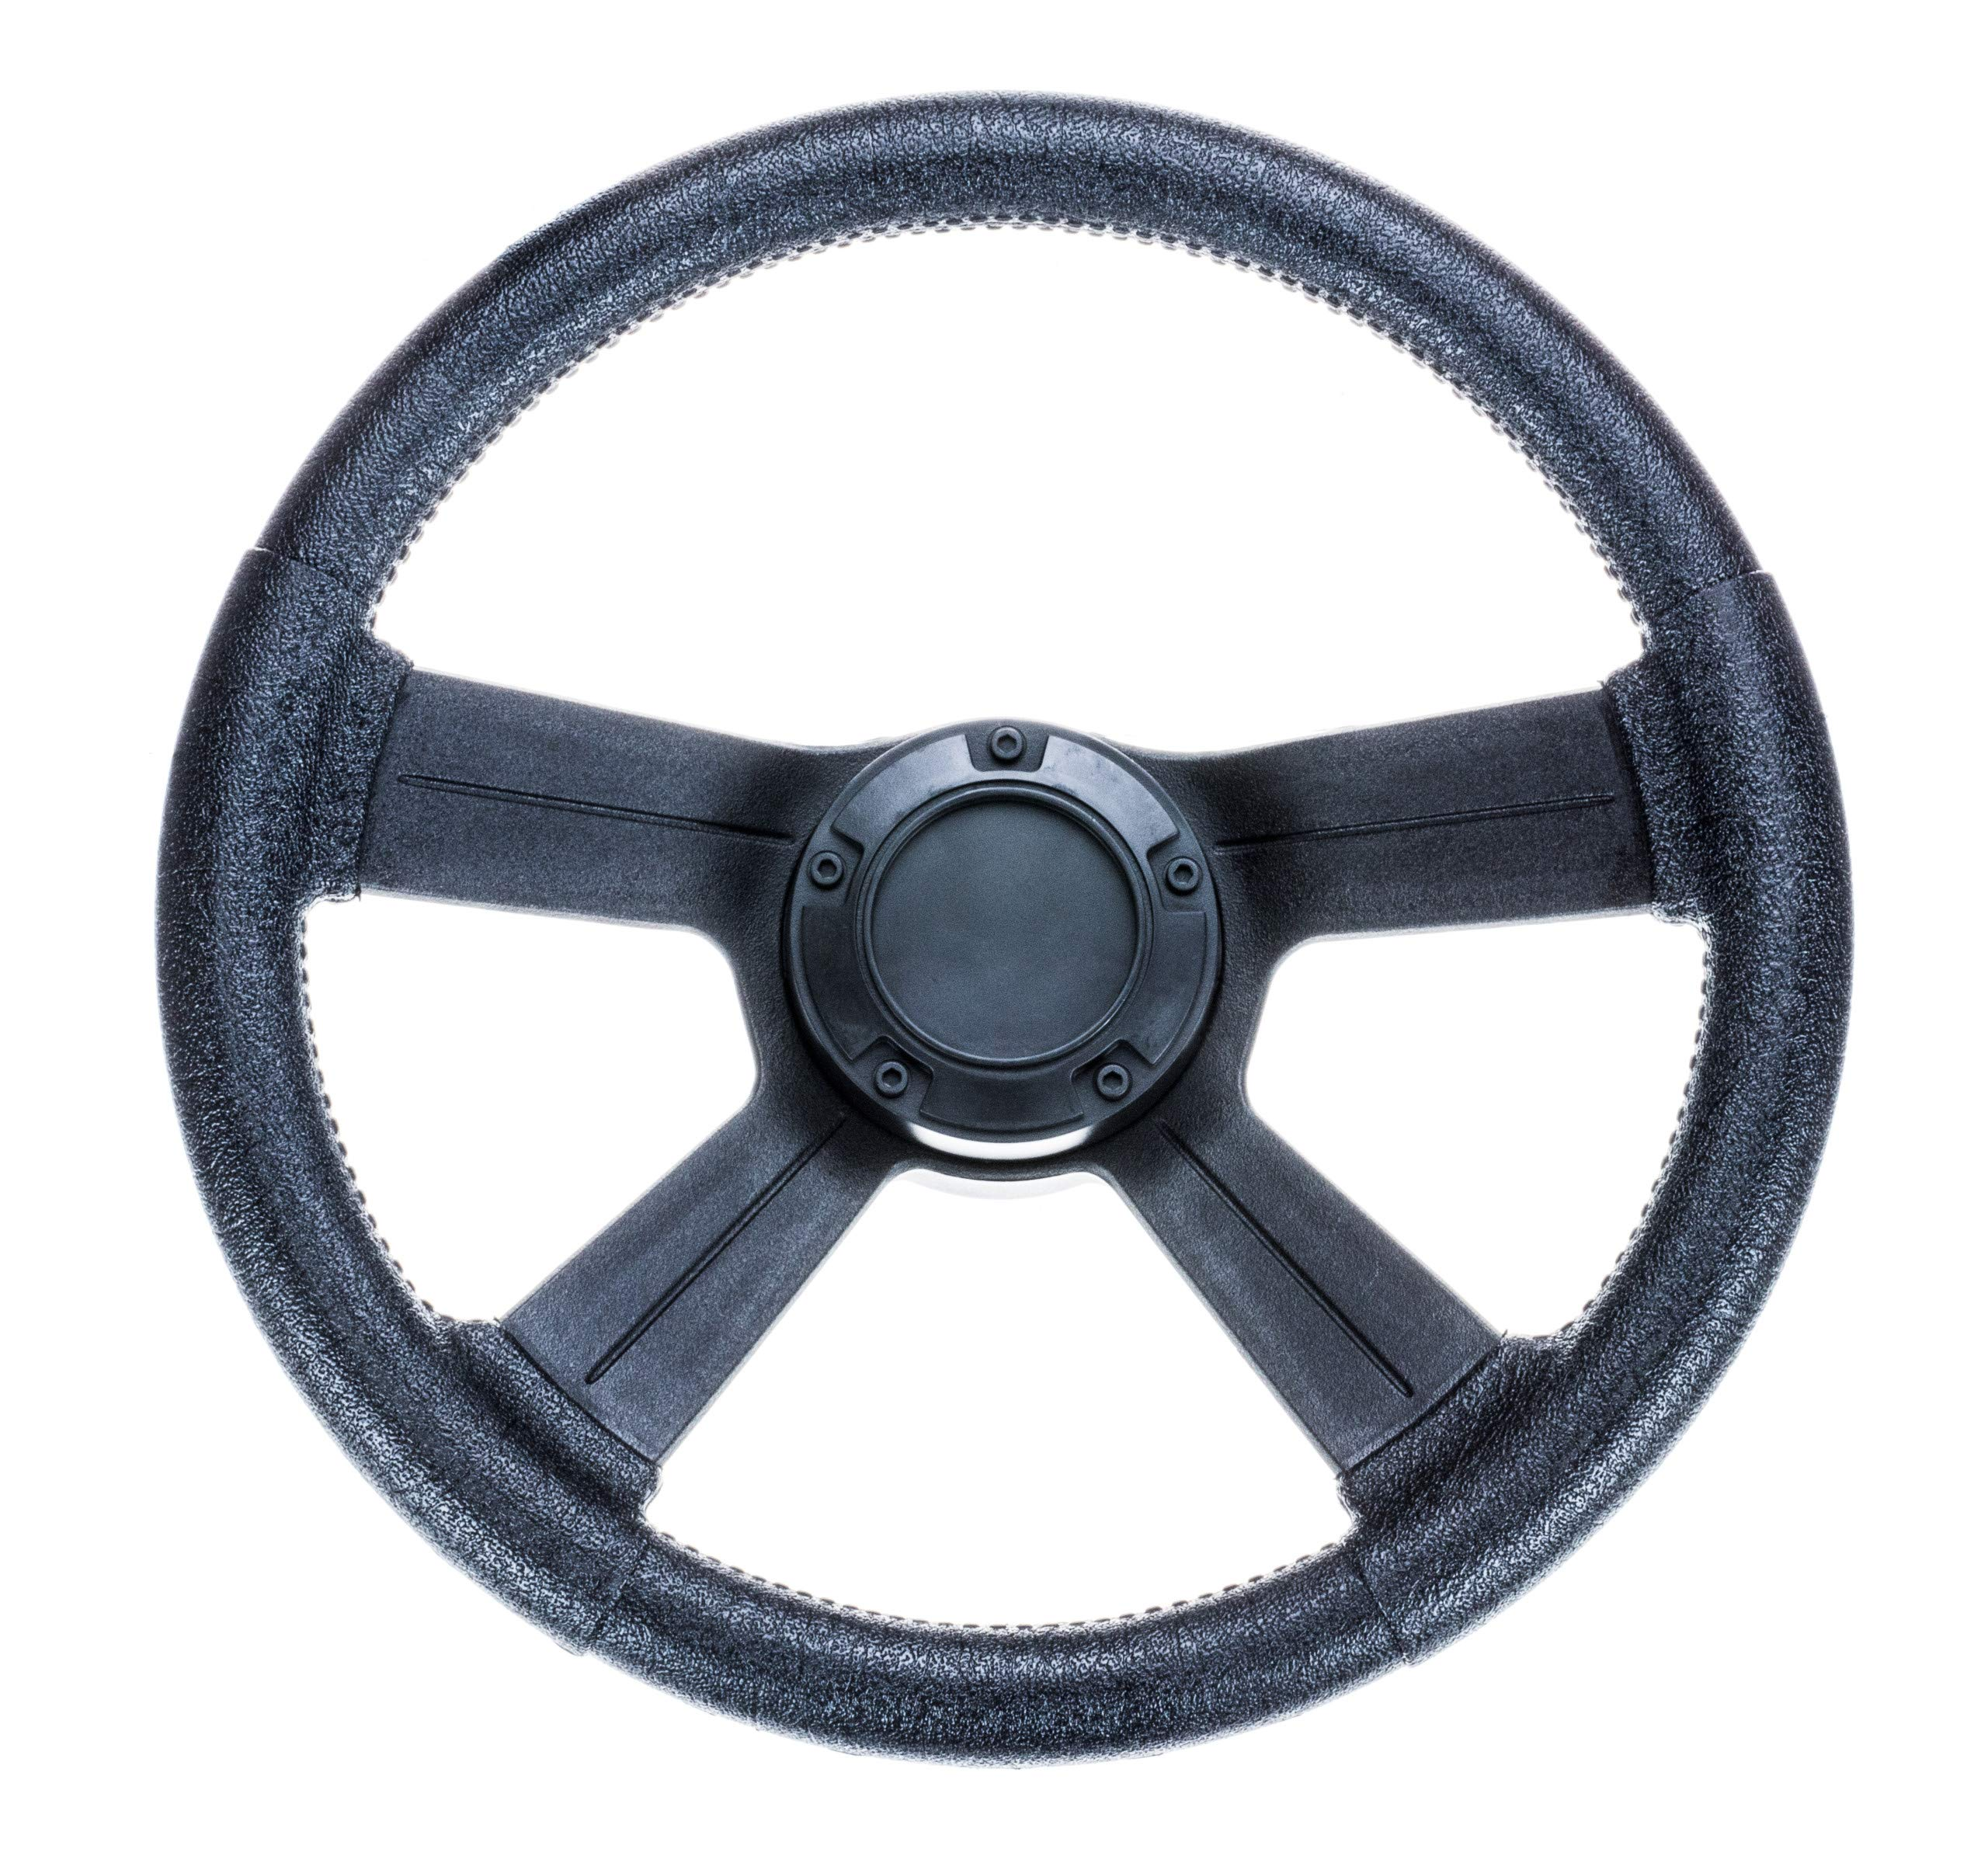 attwood 8315-4 Weatherproof 13-Inch Marine Boat Soft-Grip Steering Wheel with Cap by attwood